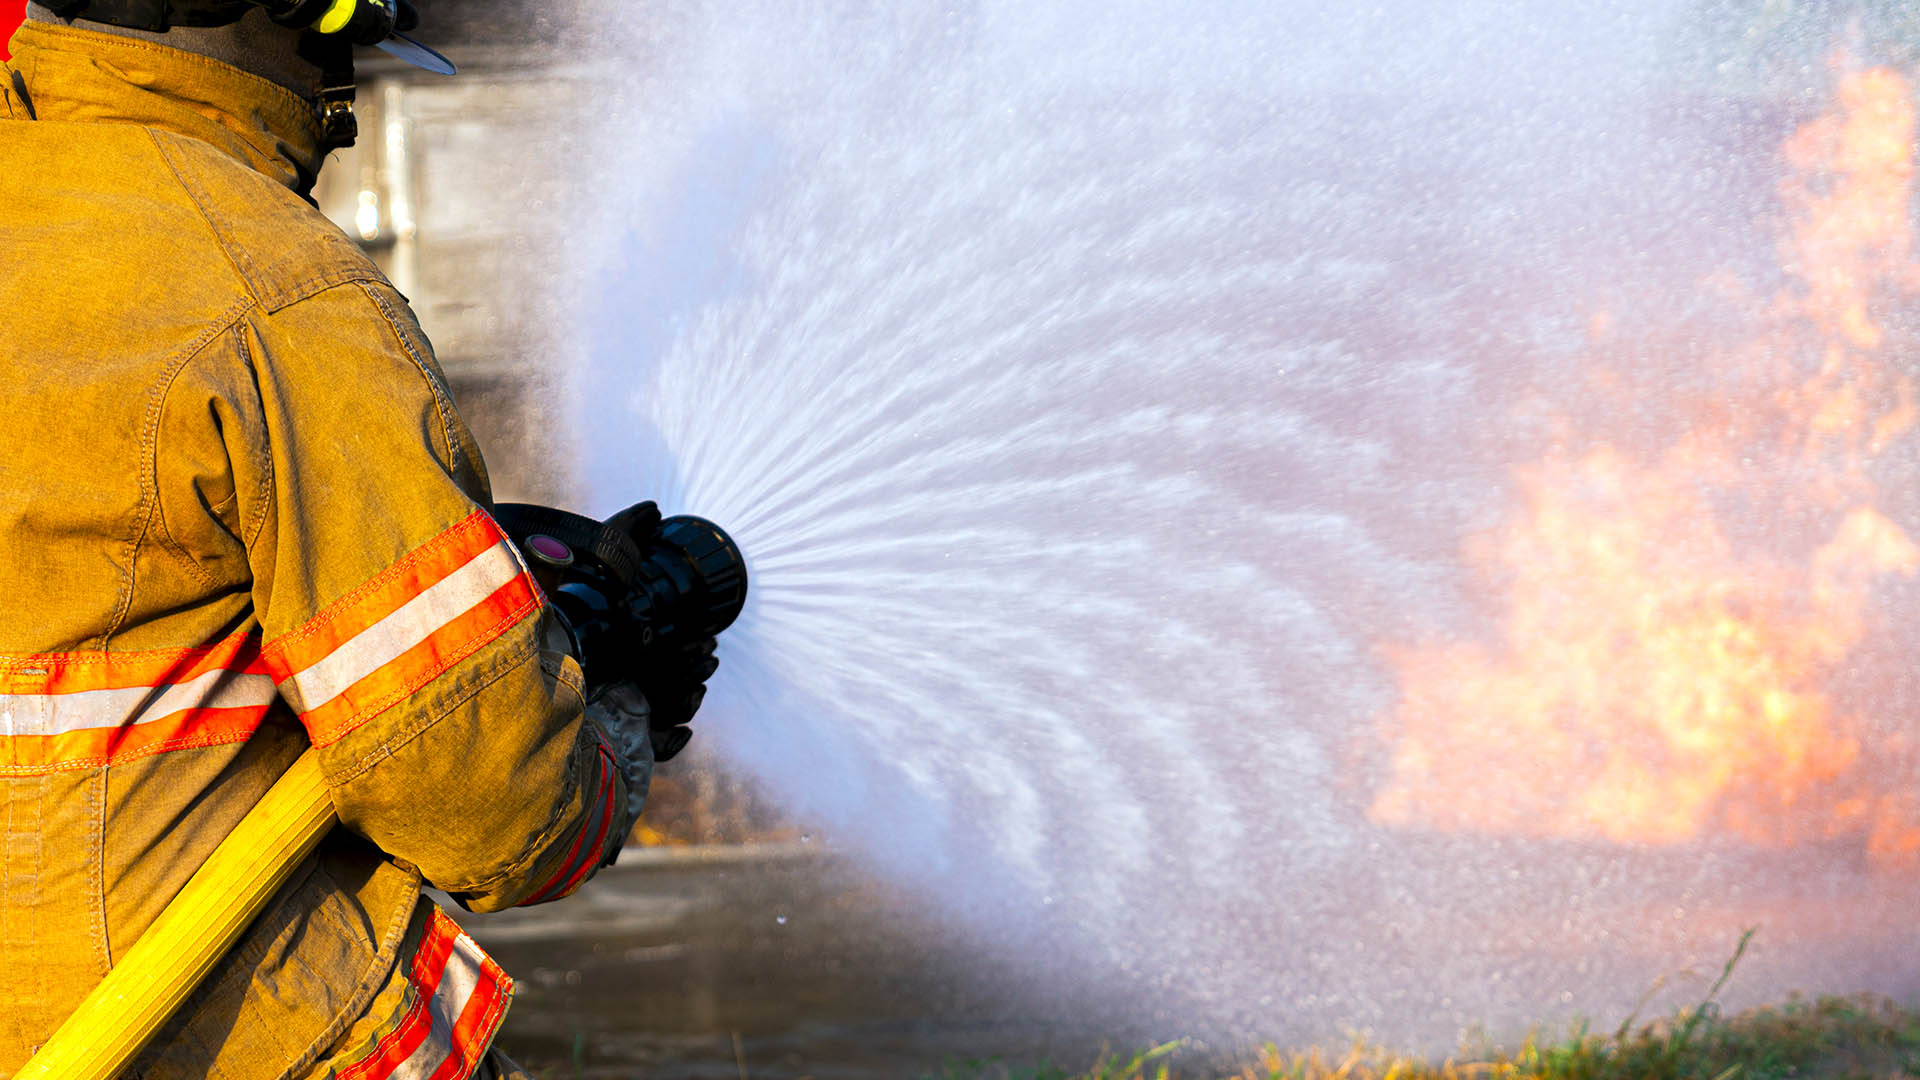 Network hose: Managing uncertain network demand. Image shows Rear View Of Firefighter high pressure spraying water to stop fire.